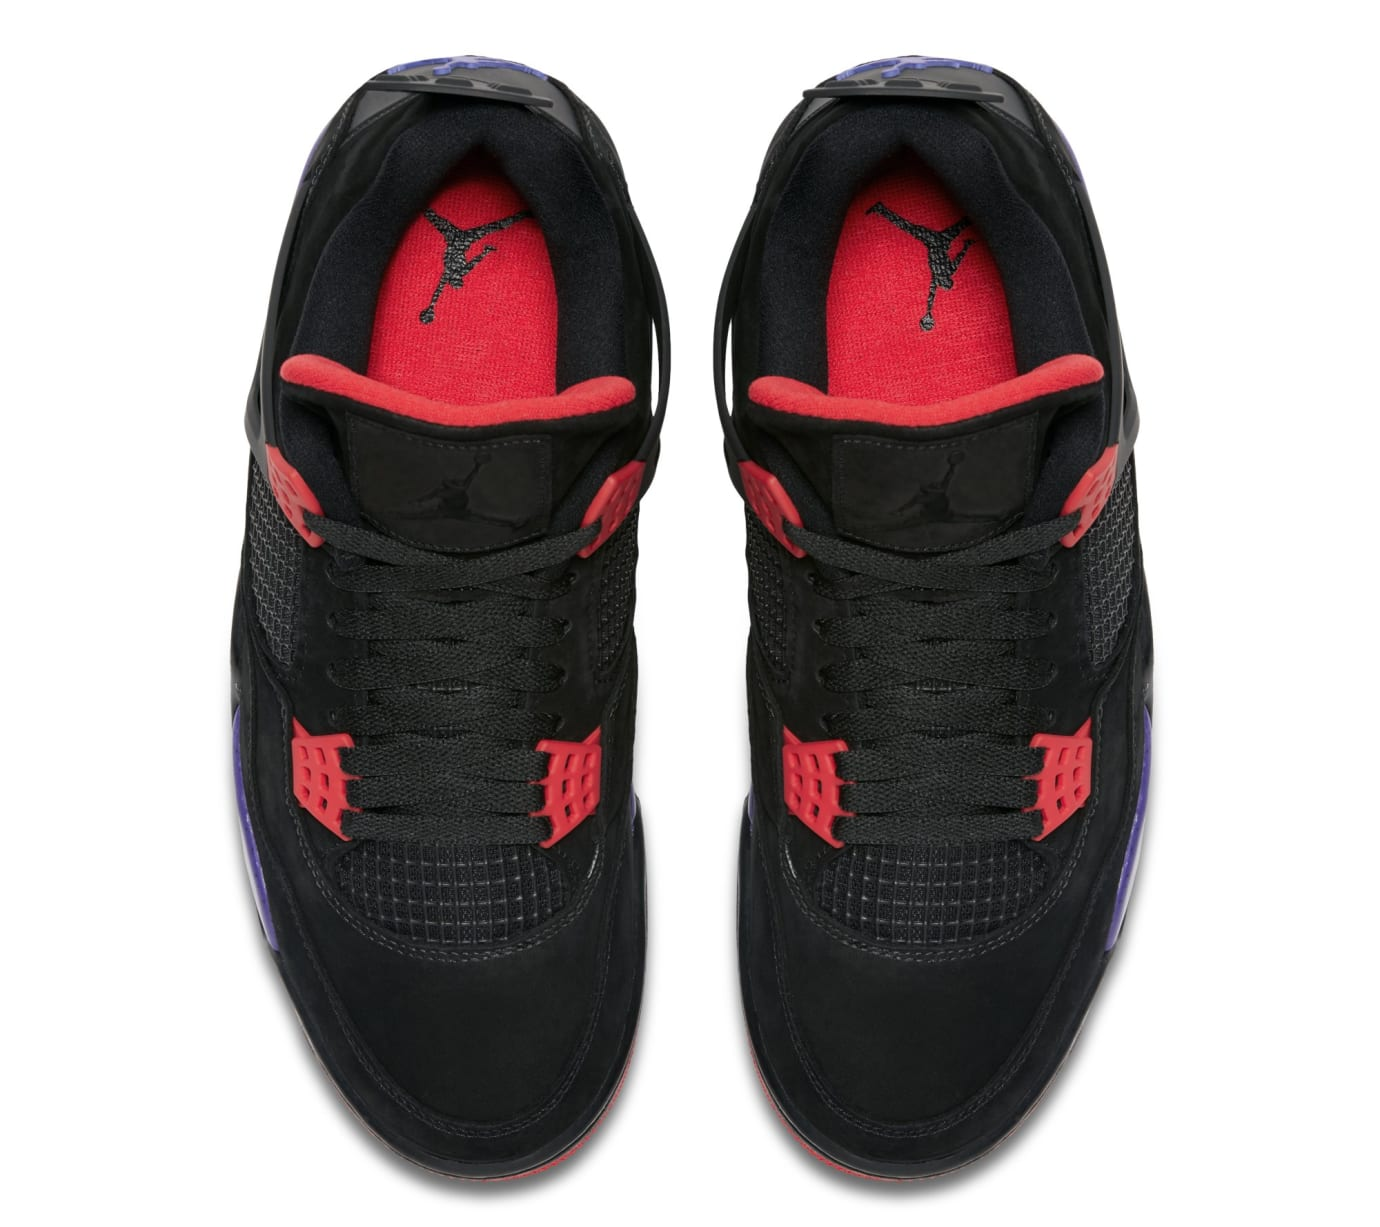 d0255111d27949 Air Jordan 4 Retro NRG  Black University Red Court Purple   AQ3816 ...